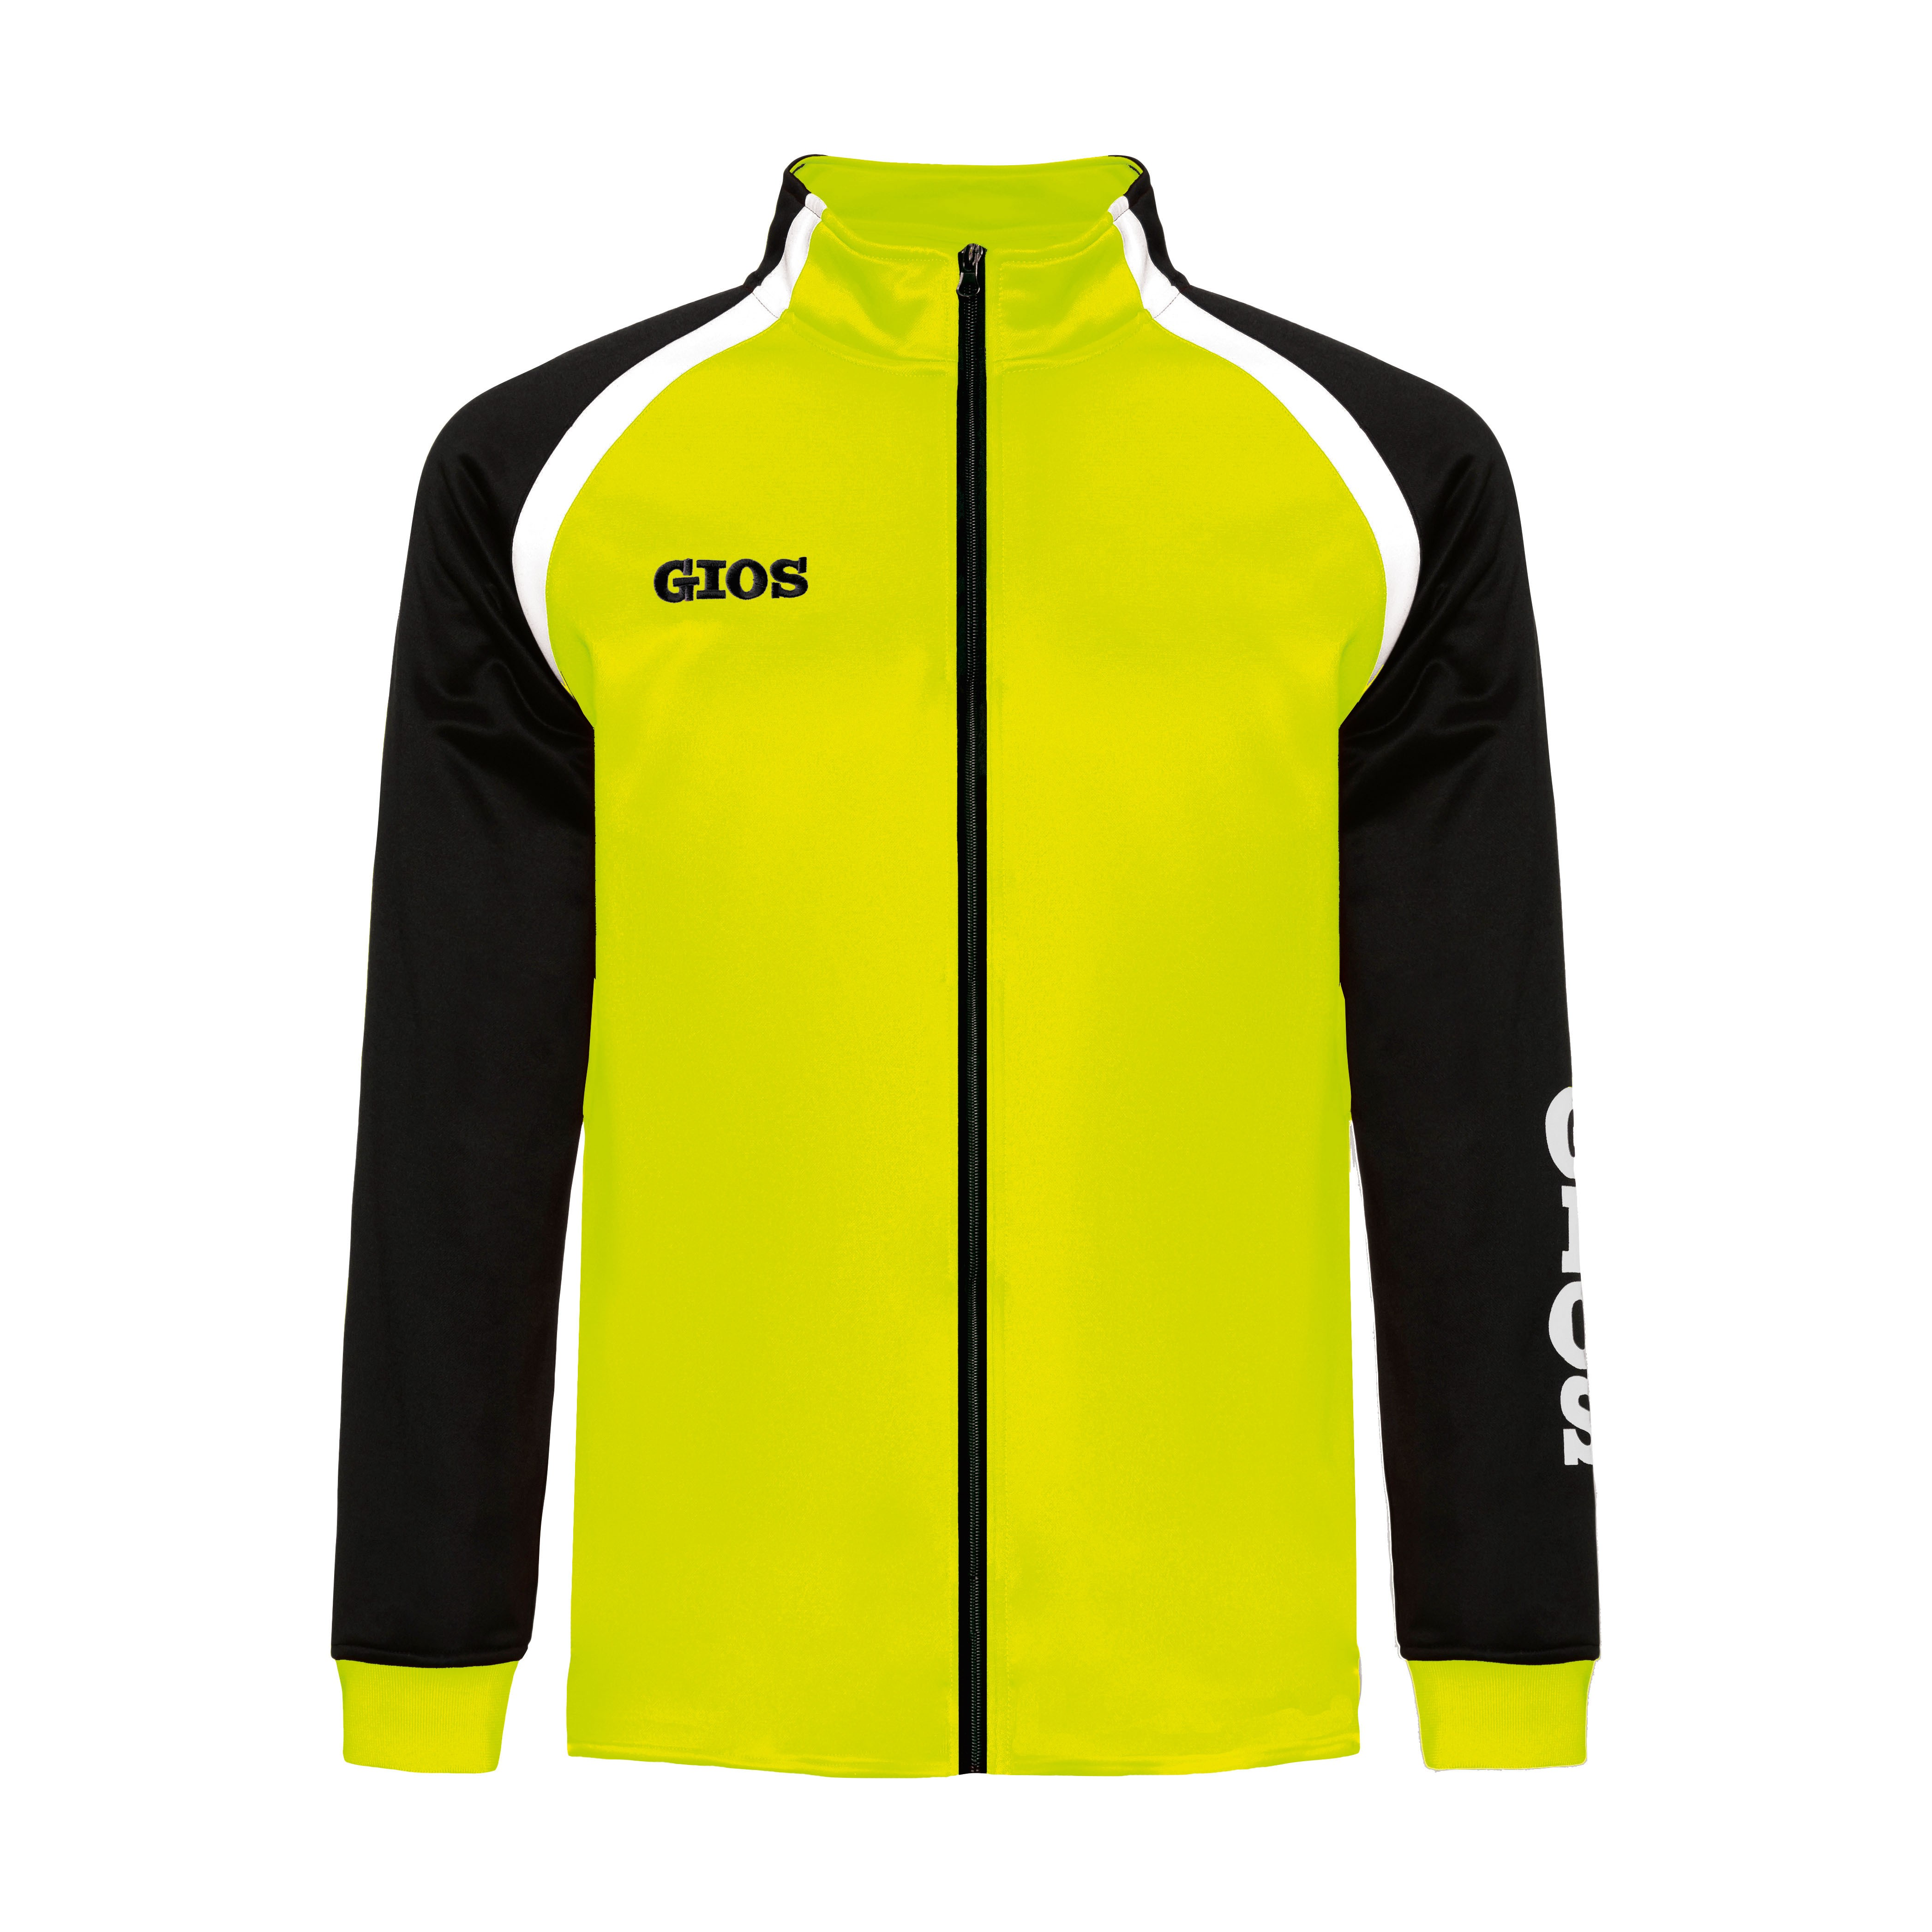 AIRONE TRACKSUIT JACKET / CHAQUETA CHÁNDAL AIRONE LIME/BLACK